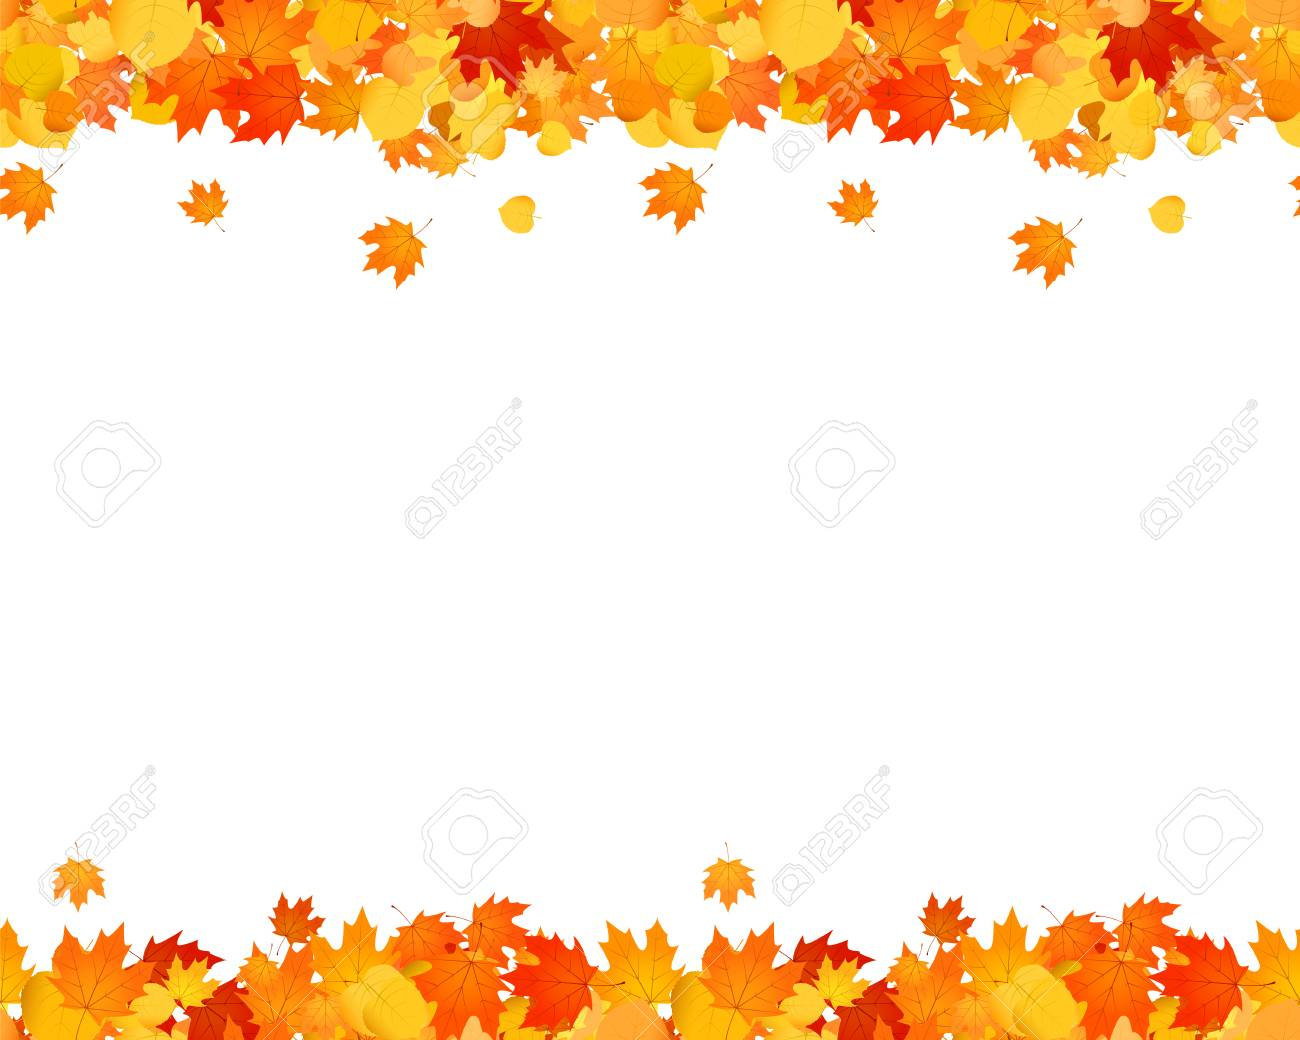 Set of autumn seamless footer and header for websites, ad, decoration. Falling leaves illustration. - 104431829